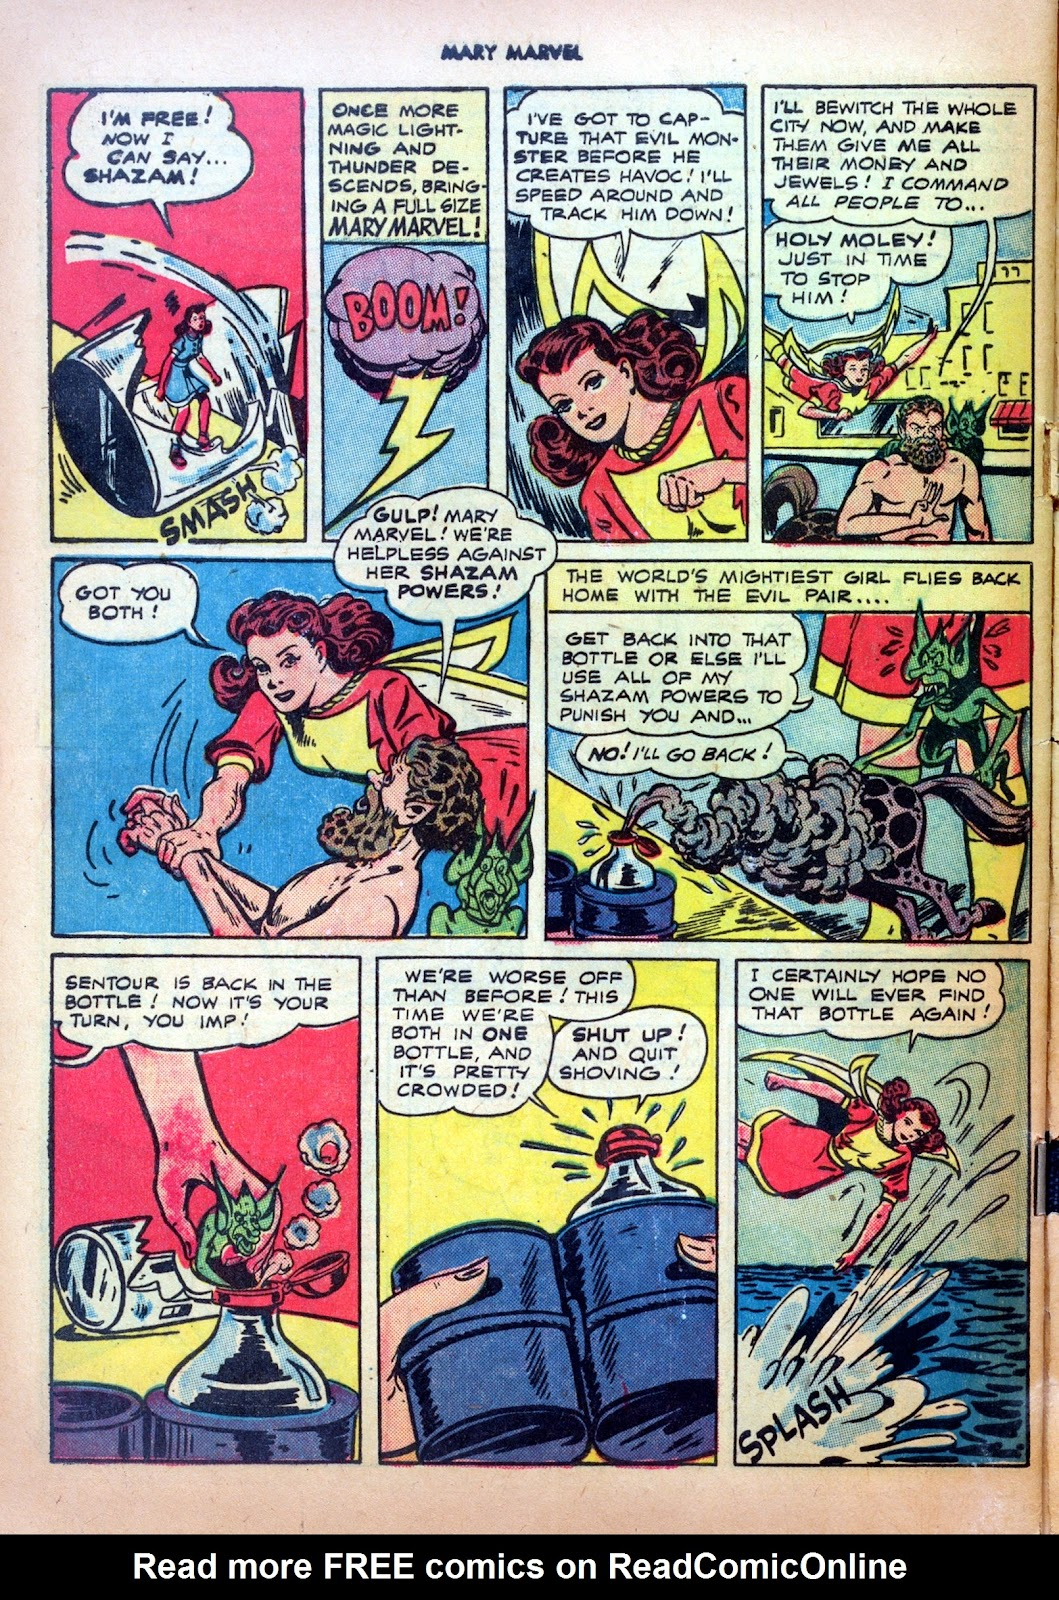 Read online Mary Marvel comic -  Issue #20 - 32